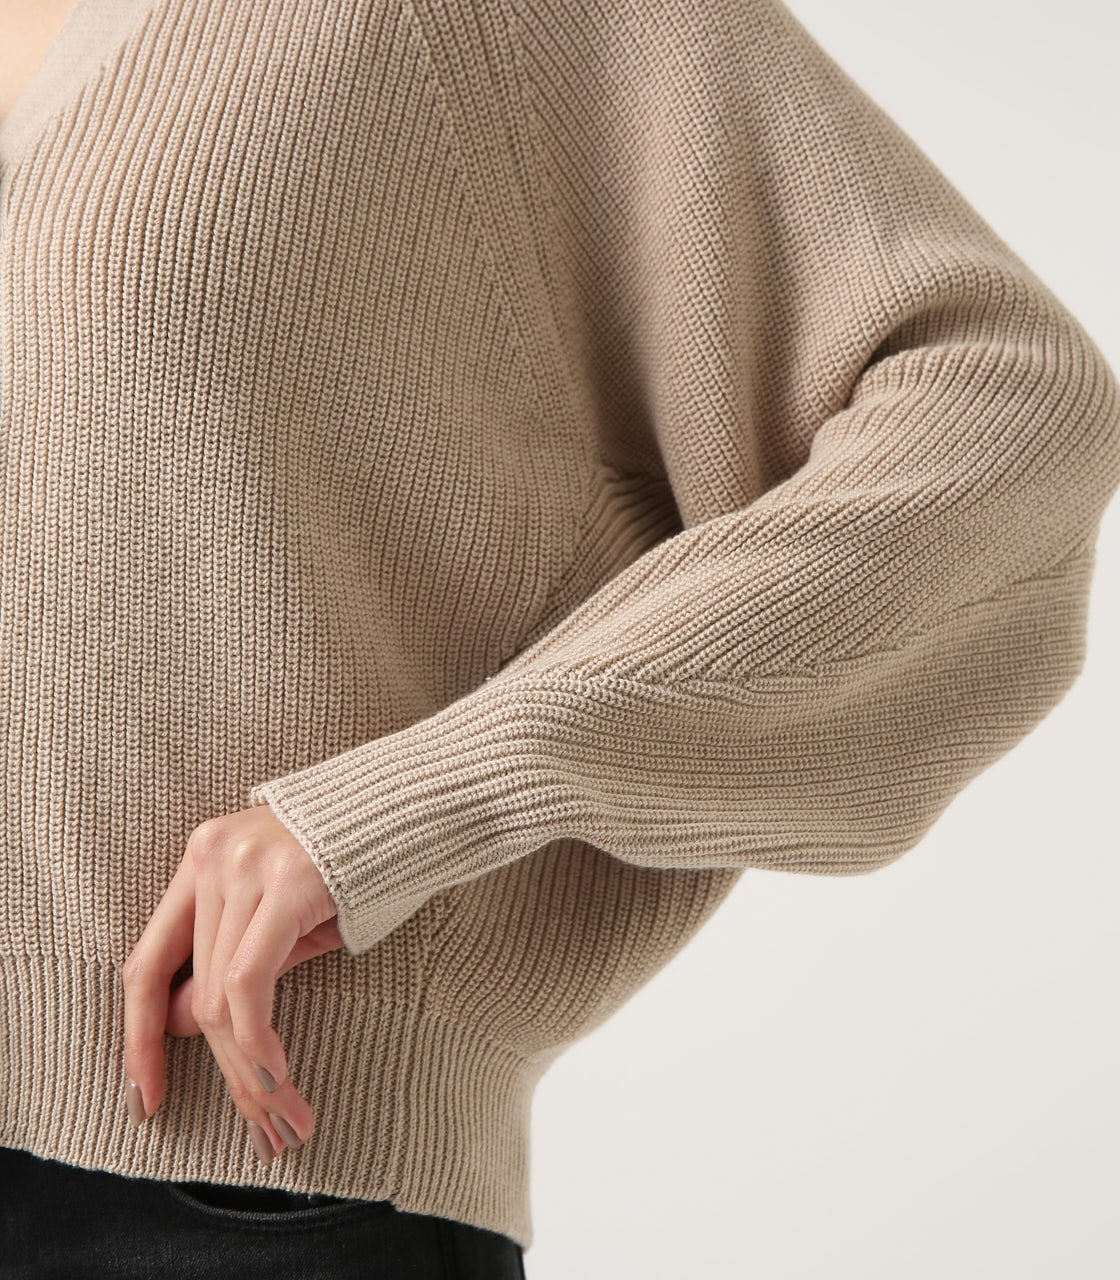 【AZUL BY MOUSSY】SHORT KNIT CARDIGAN 詳細画像 L/BEG 9